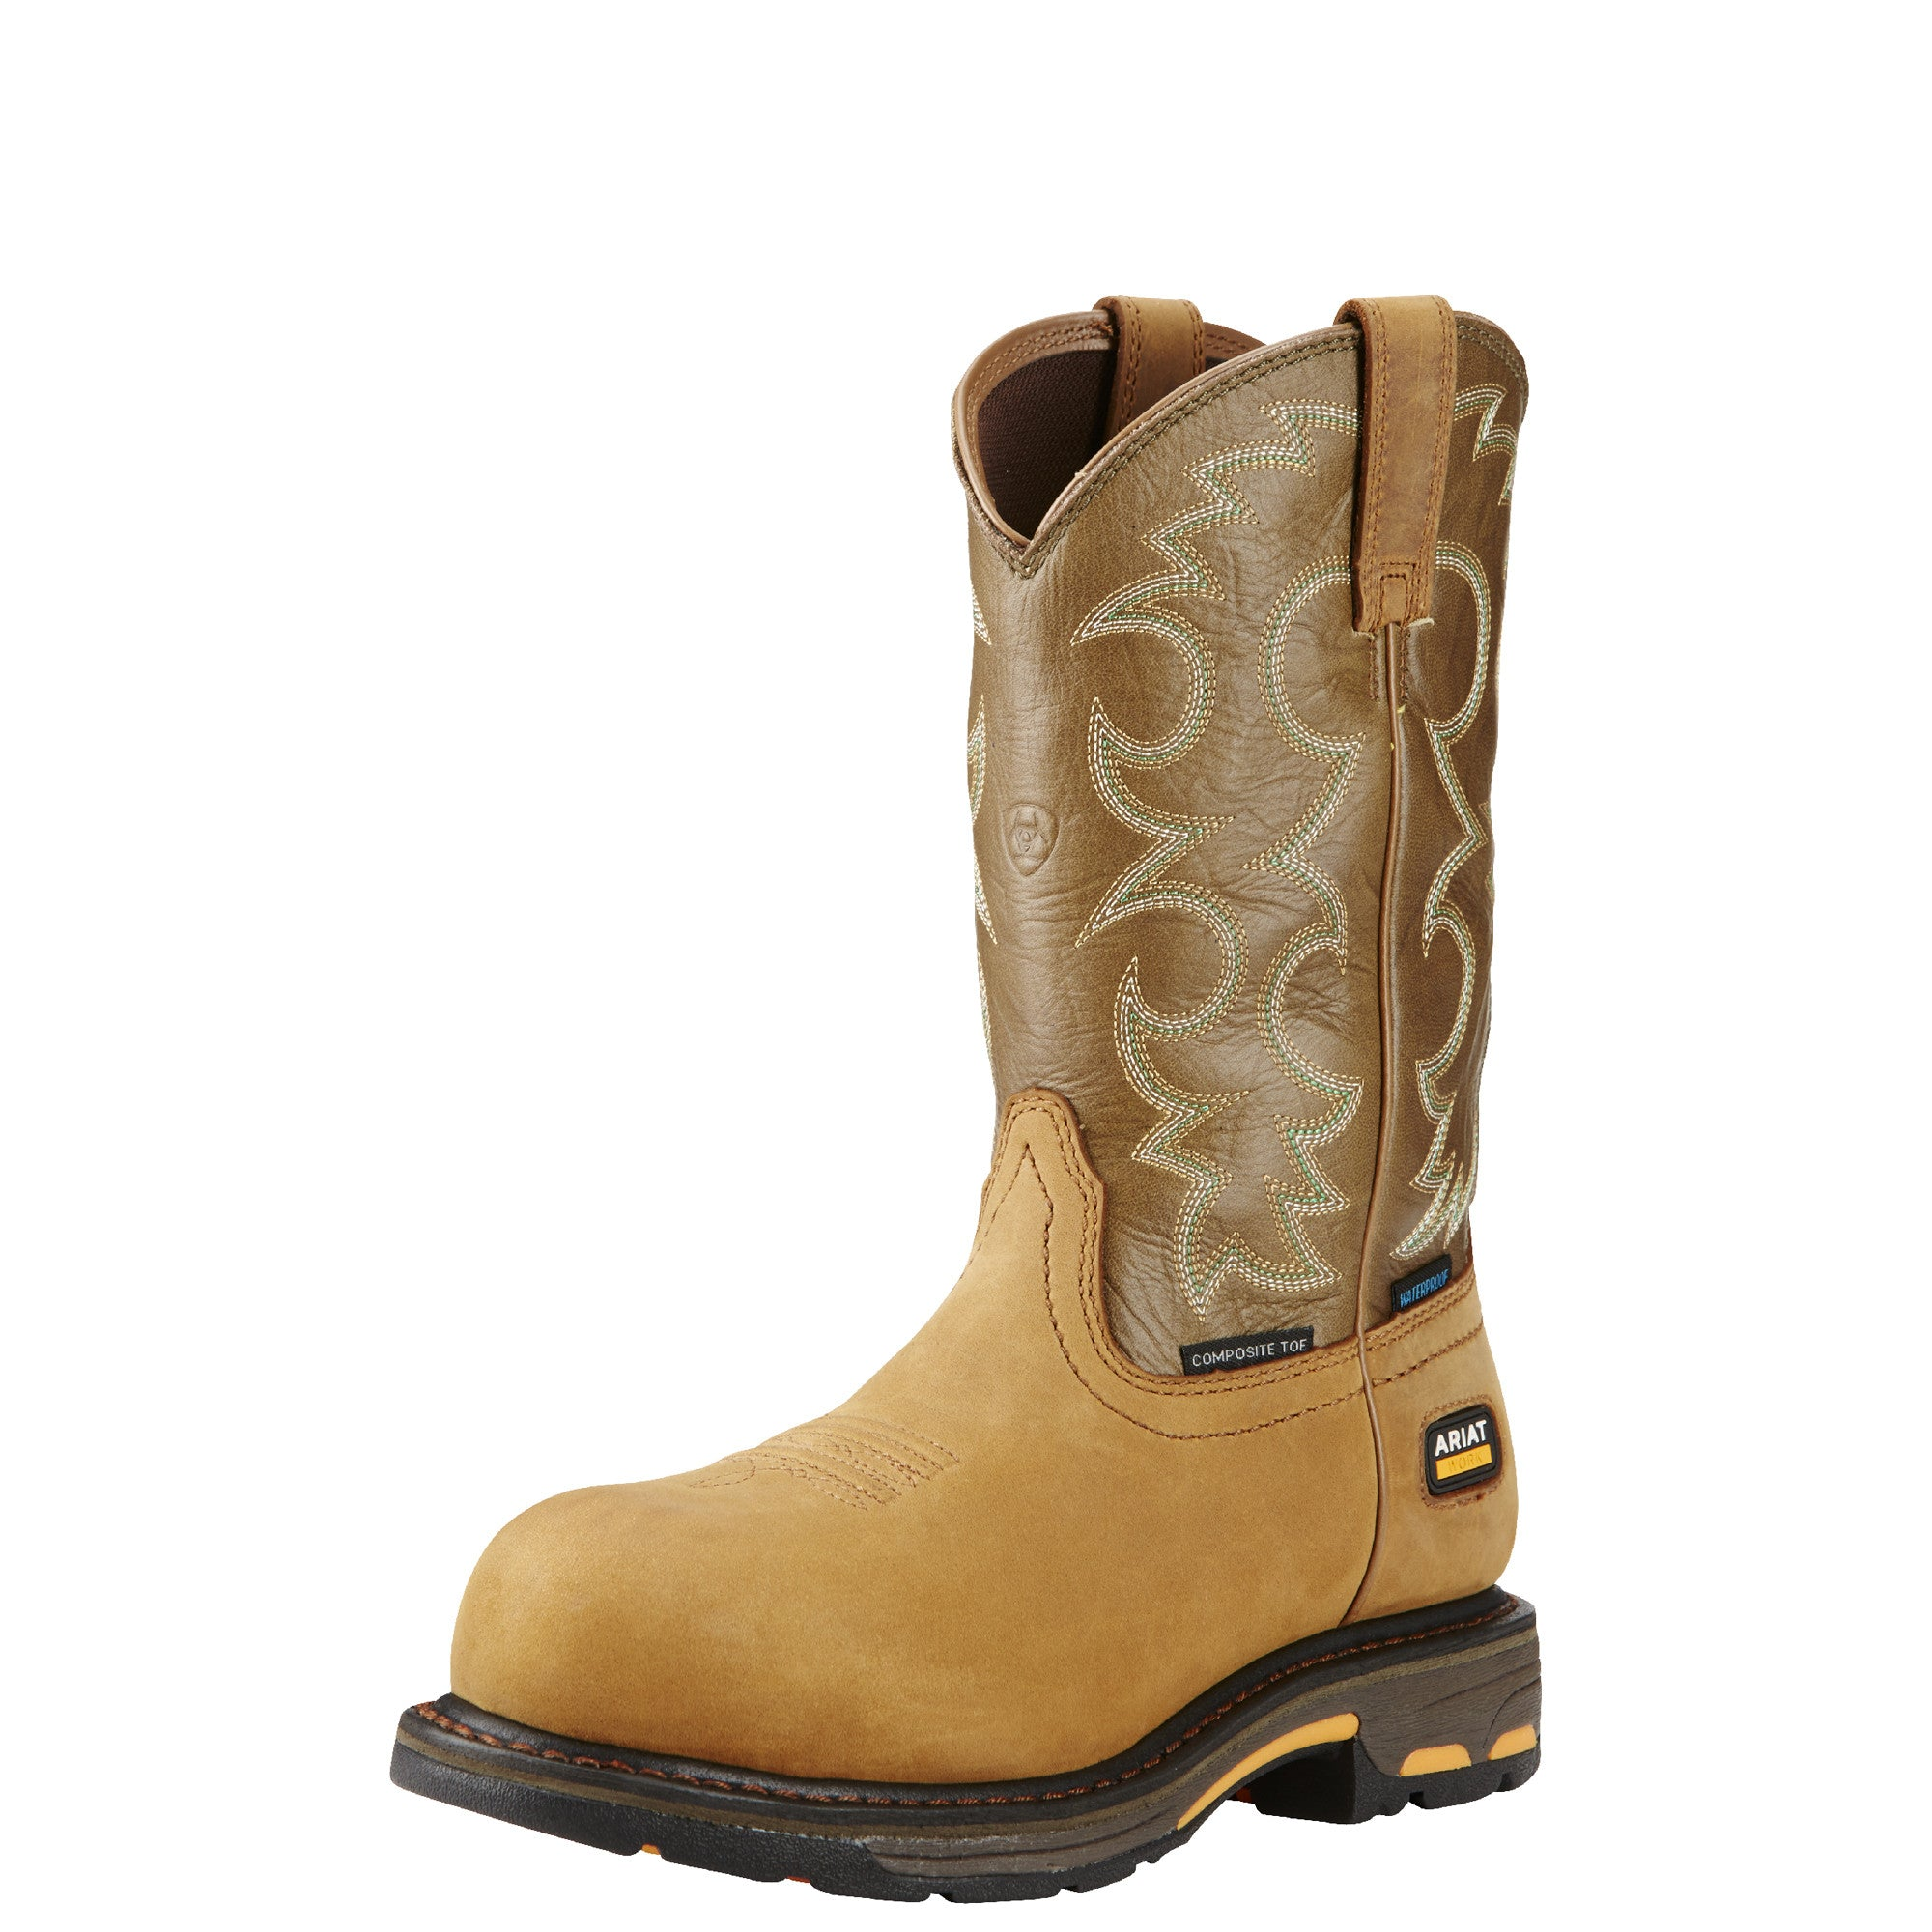 bf09960206a Women's Ariat WorkHog Composite Toe Waterproof Work Boot #10018578